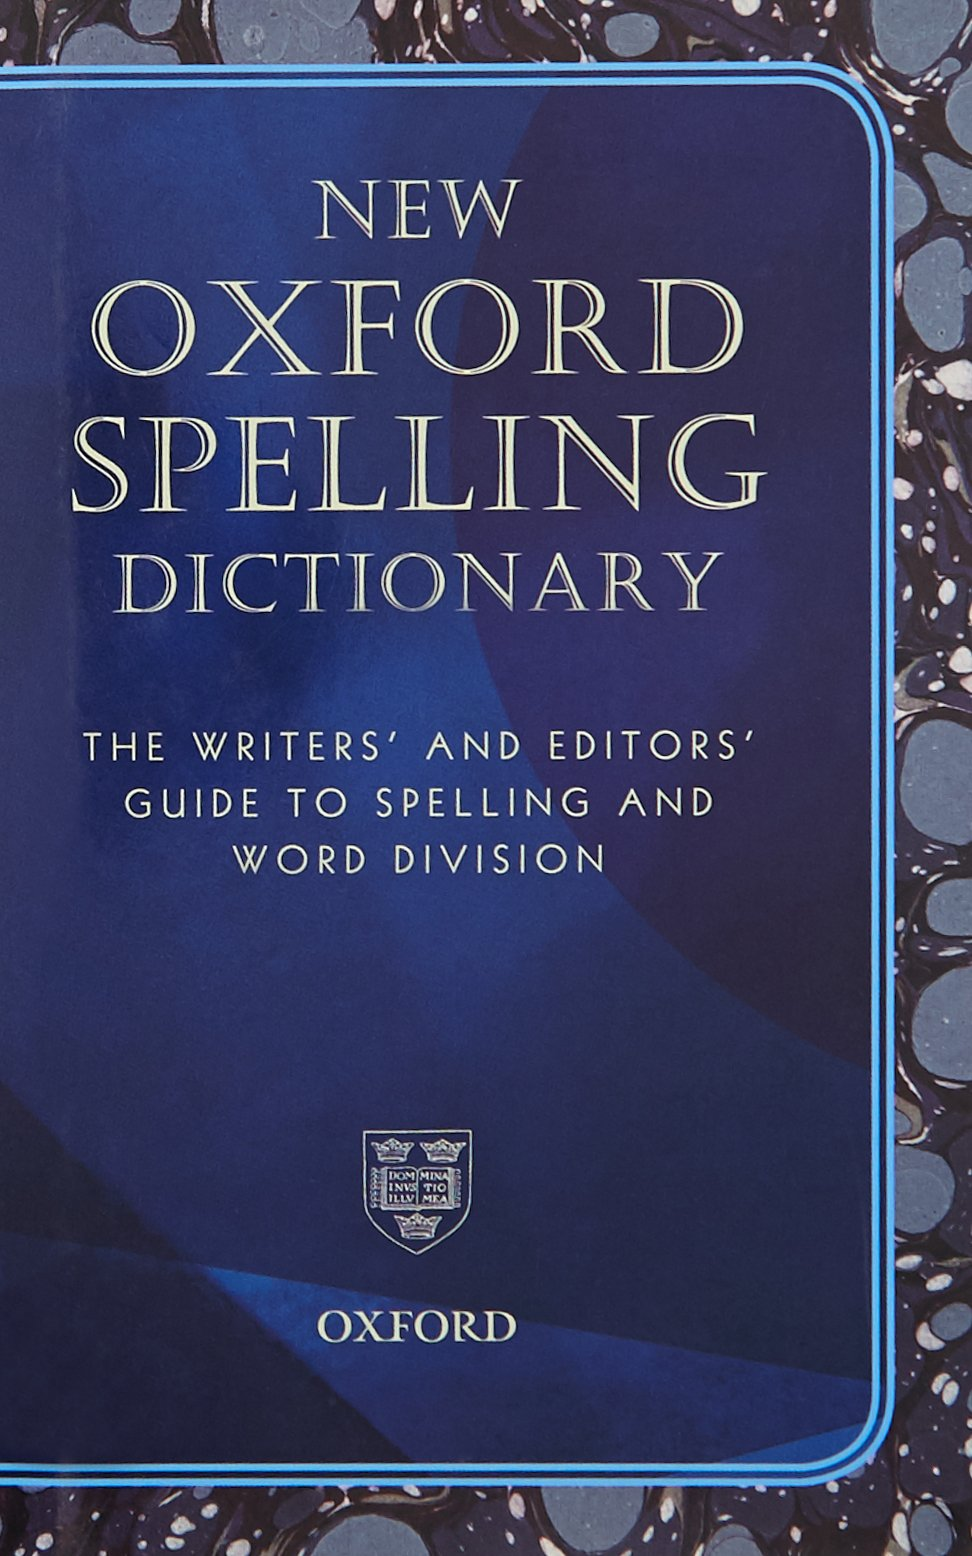 New Oxford Spelling Dictionary The Writers And Editors Guide To